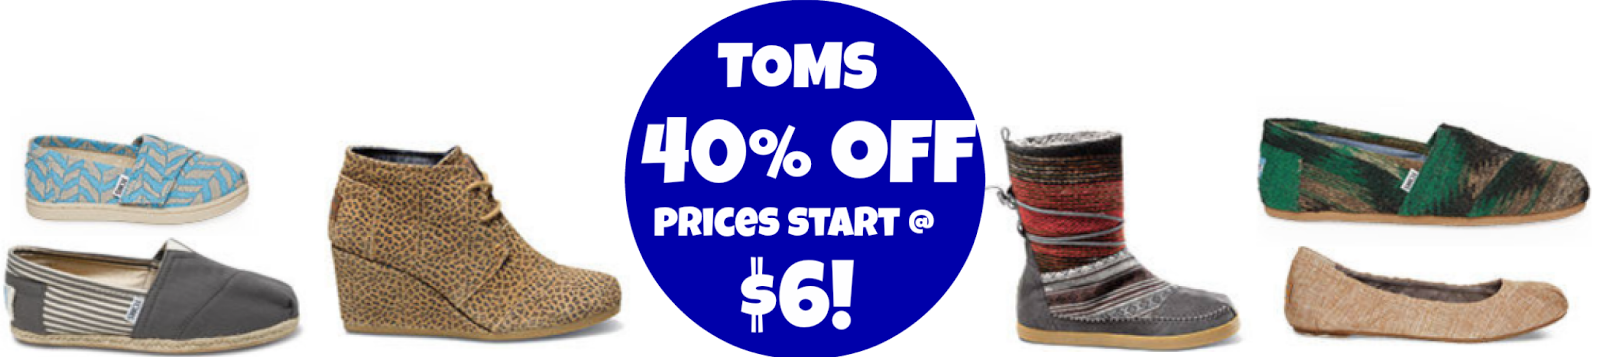 http://www.thebinderladies.com/2015/01/toms-40-off-shoes-boots-accessories.html#.VLU5YIfduyM